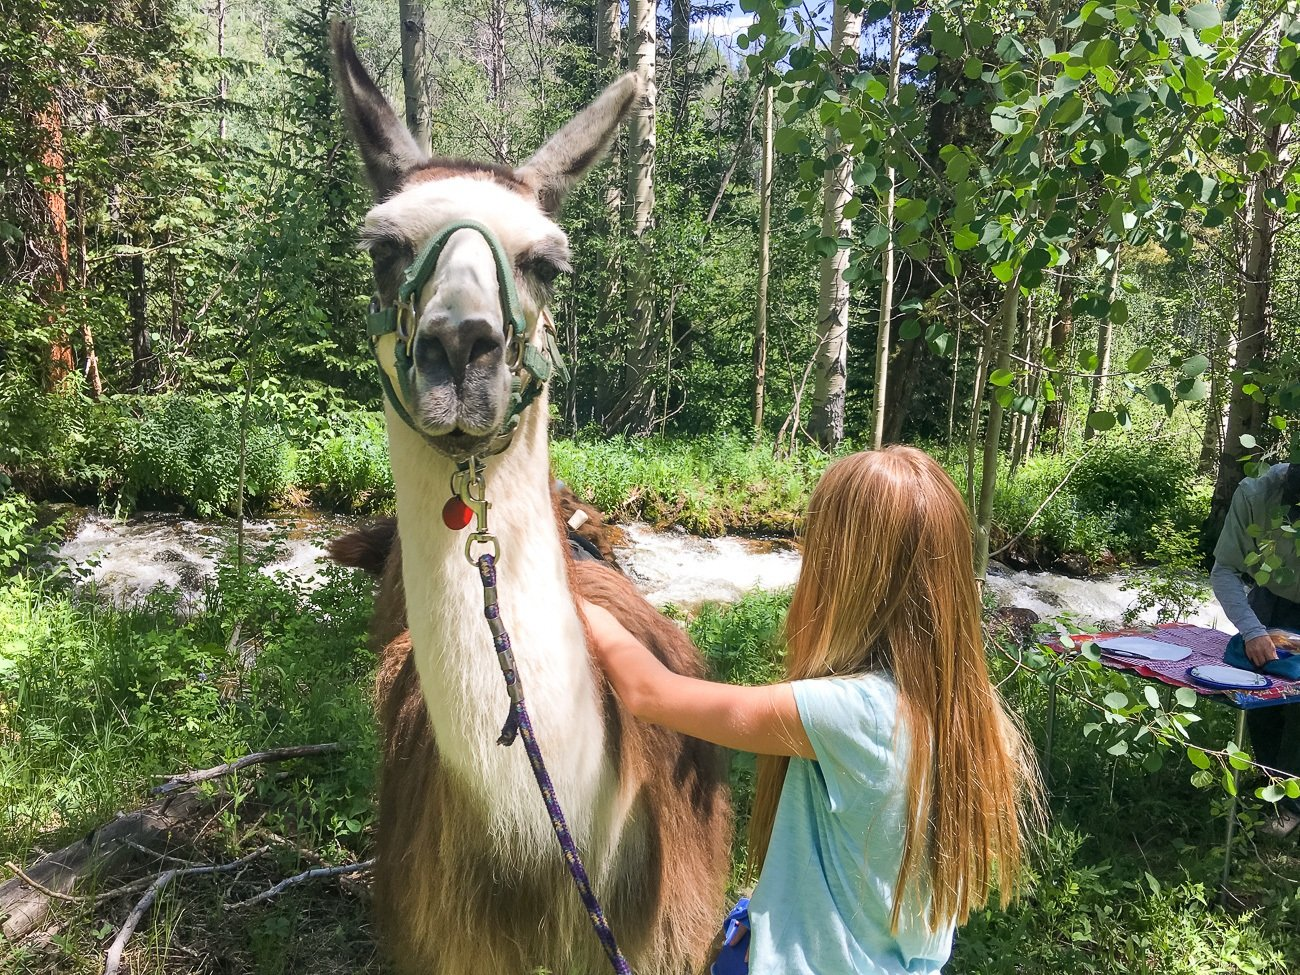 Llama trekking with Paragon Guides is a great thing to do with kids in Vail, Colorado